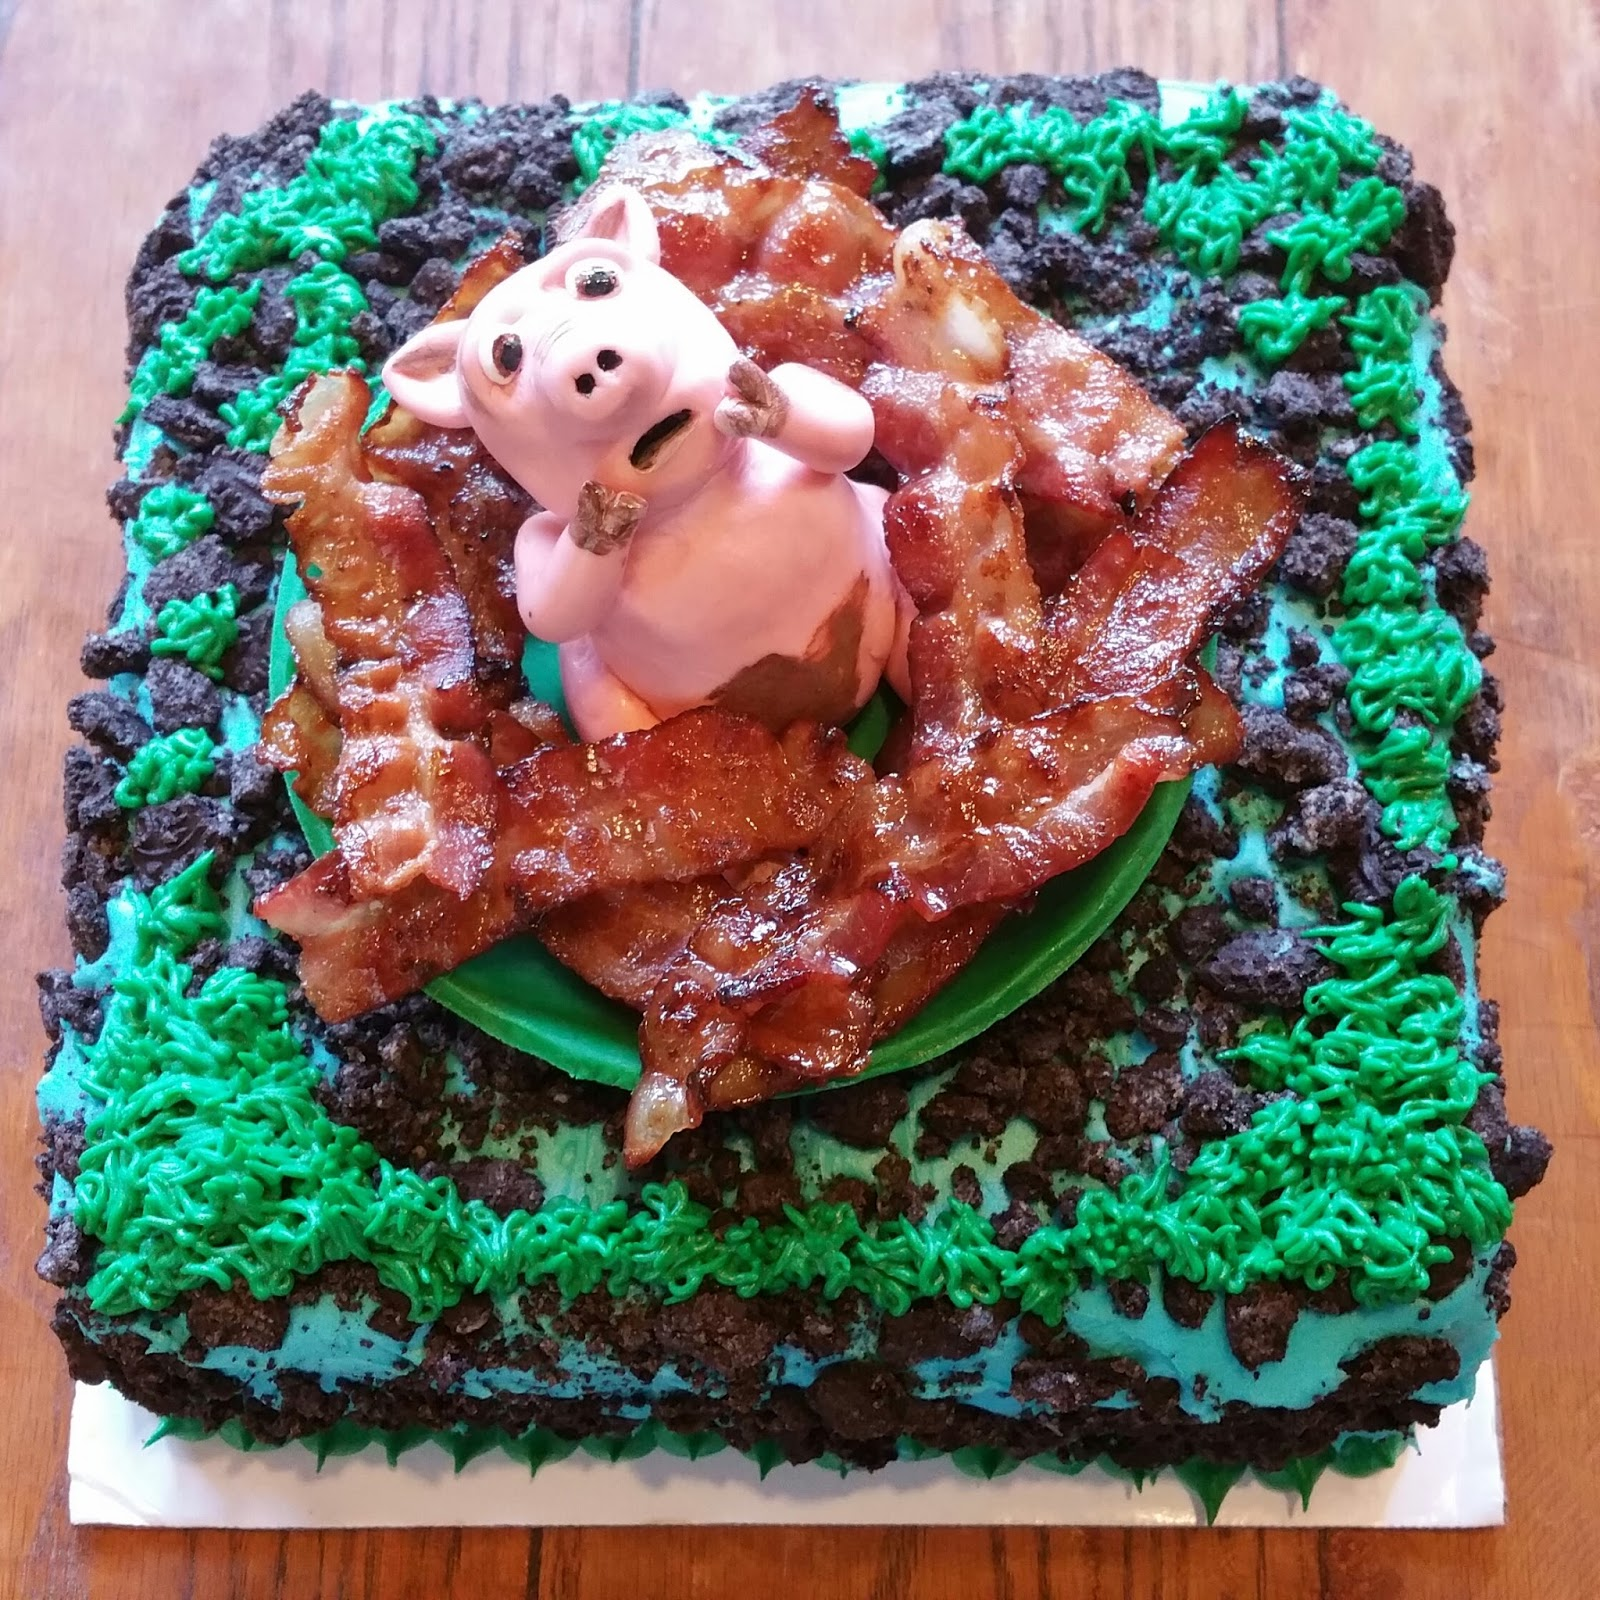 Dabblings of a Snarky Mom: Jill's Cake Design Information Page on firehouse ice cream, firehouse toy, firehouse beer, firehouse cupcake, firehouse desserts, firehouse gingerbread house, firehouse sauces,